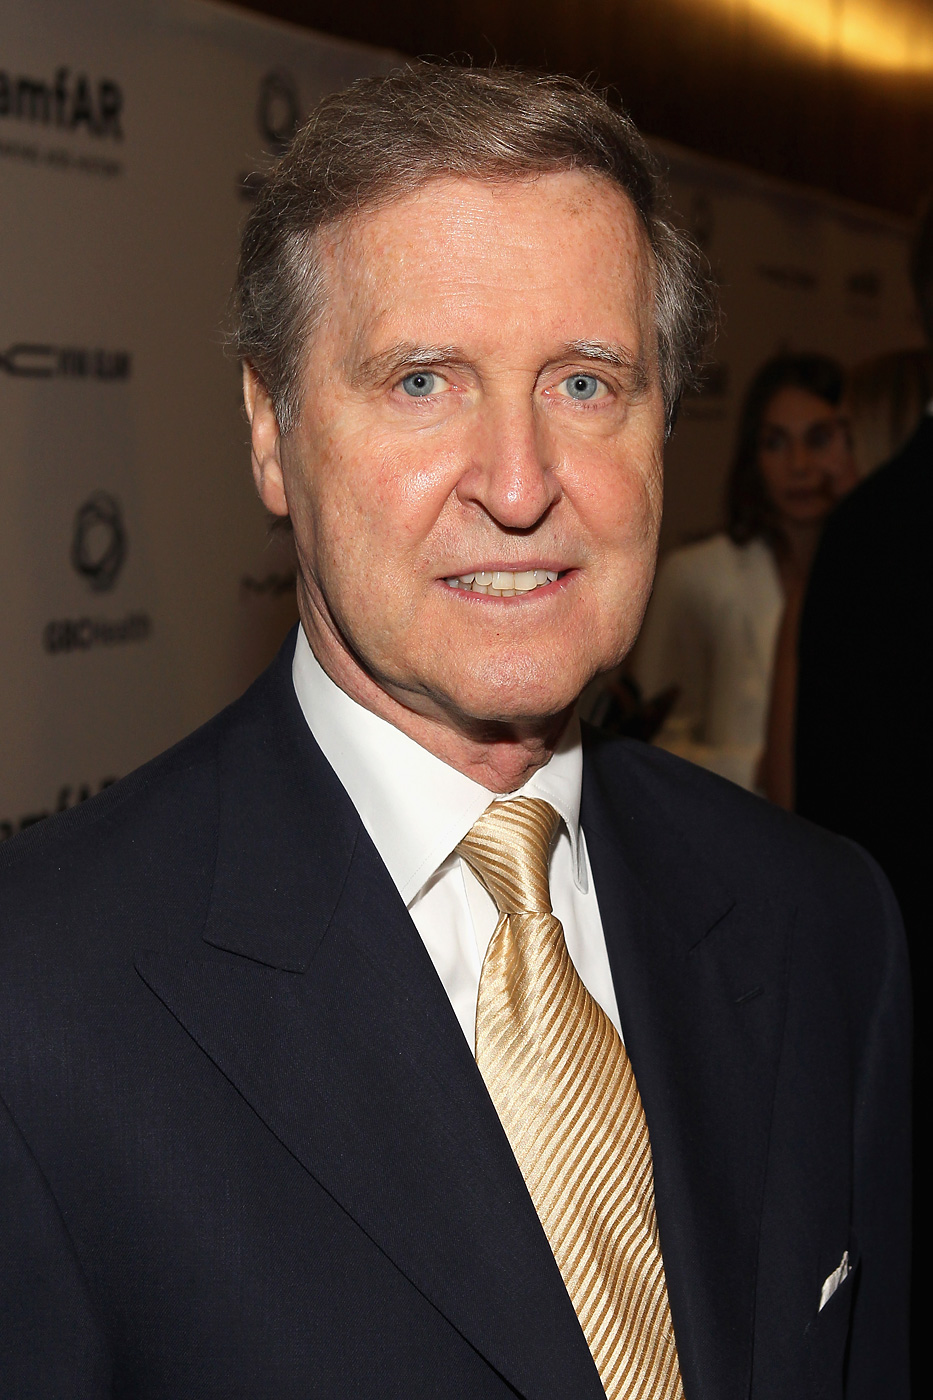 Former U.S. Secretary of Defense William S. Cohen attends Together to End AIDS: An Evening to Benefit amfAR and GBCHealth at John F. Kennedy Center for the Performing Arts on July 21, 2012, in Washington, D.C.